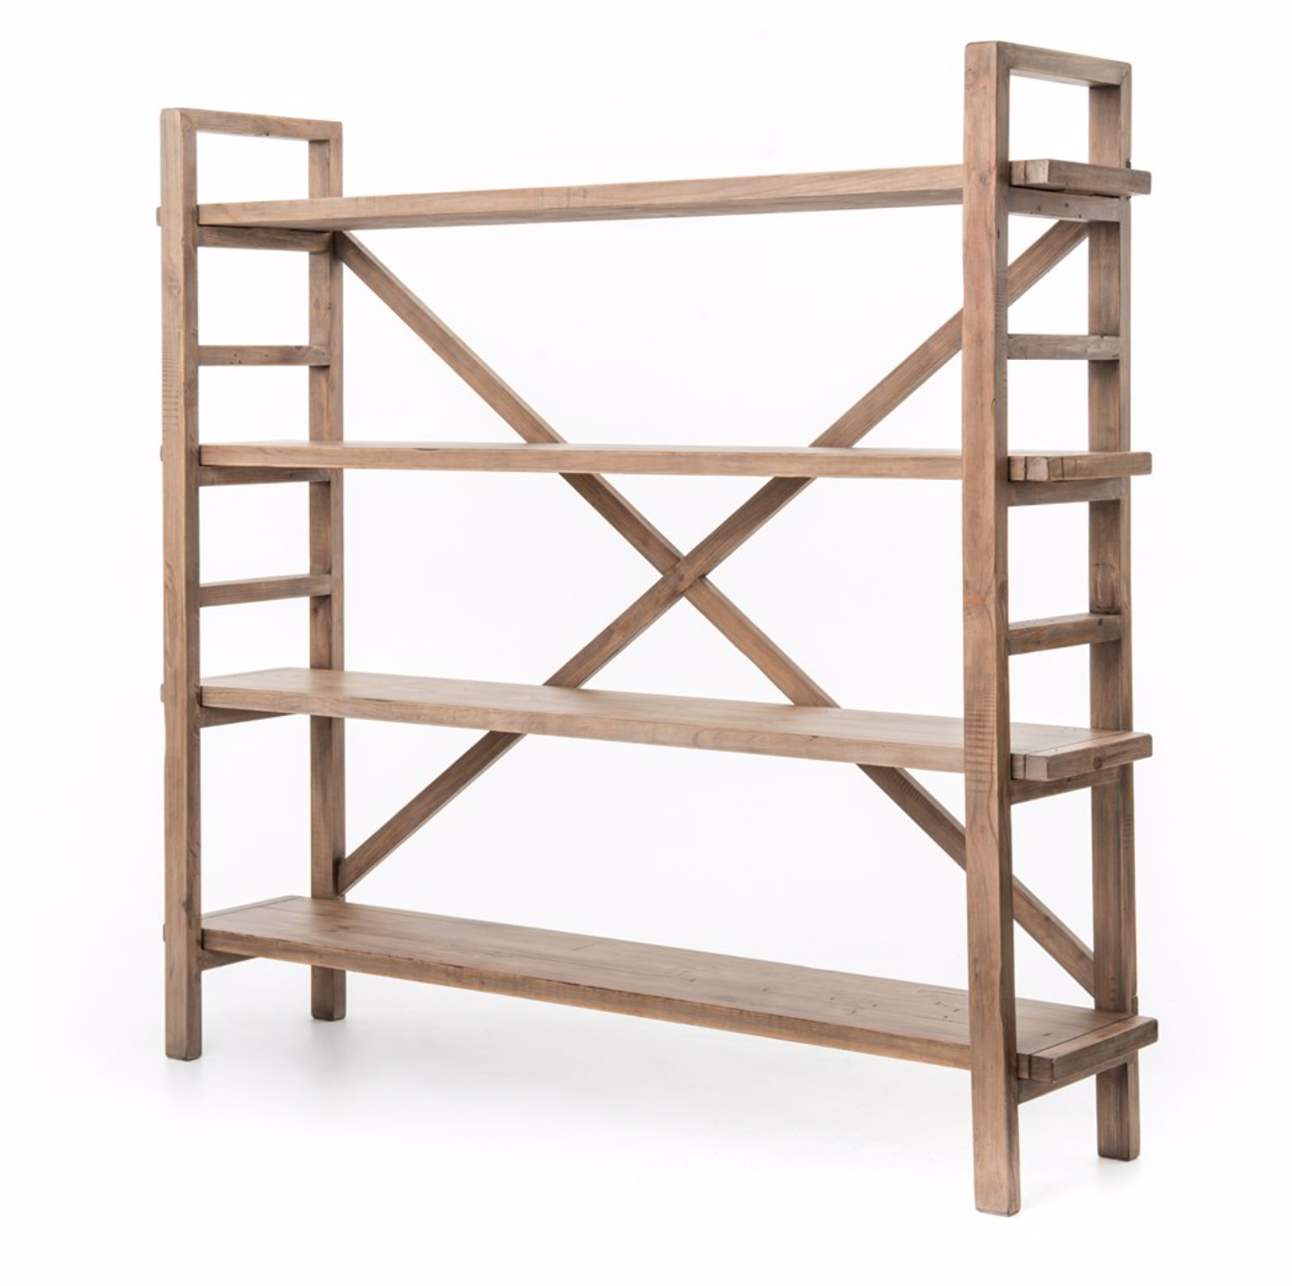 "Price: $100  Quantity: 2  Dimensions: 76.25""W x 17""D x 70.25""H  Shelf Dimensions: 16.5""H x is 67""W x 13.5""D"